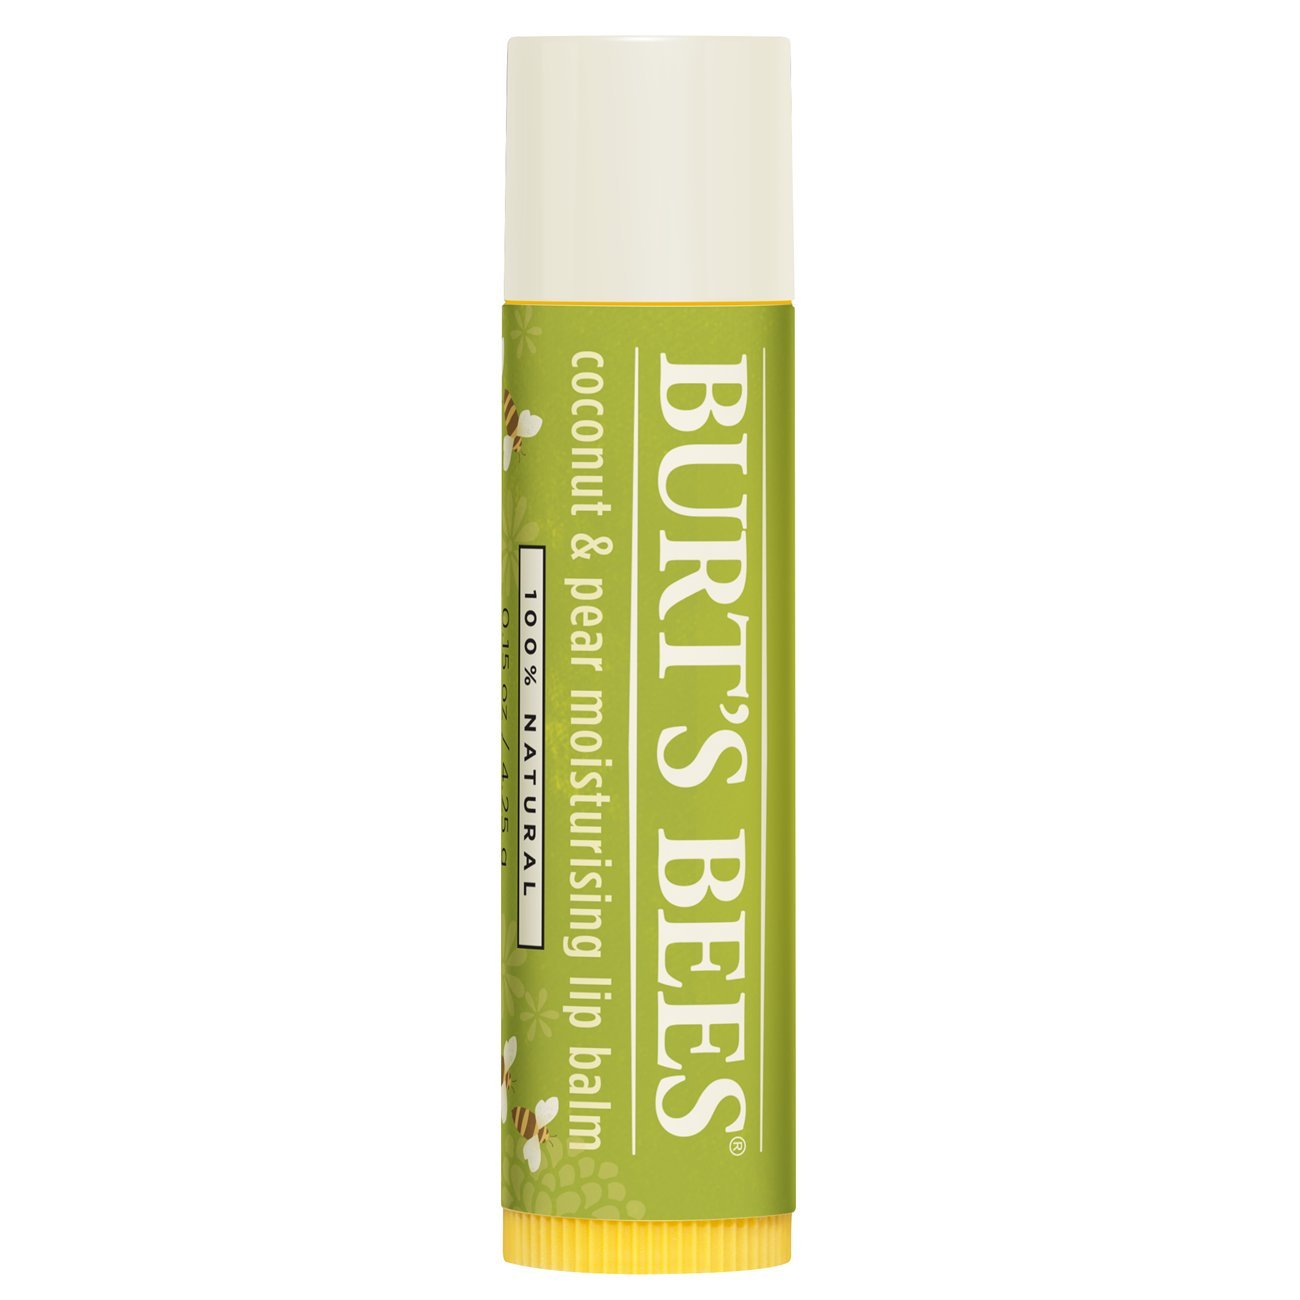 Burt's Bees 100 Percent Natural All-Weather SPF15 Moisturising Lip Balm, 4.25 g Burt' s Bees 90011-14